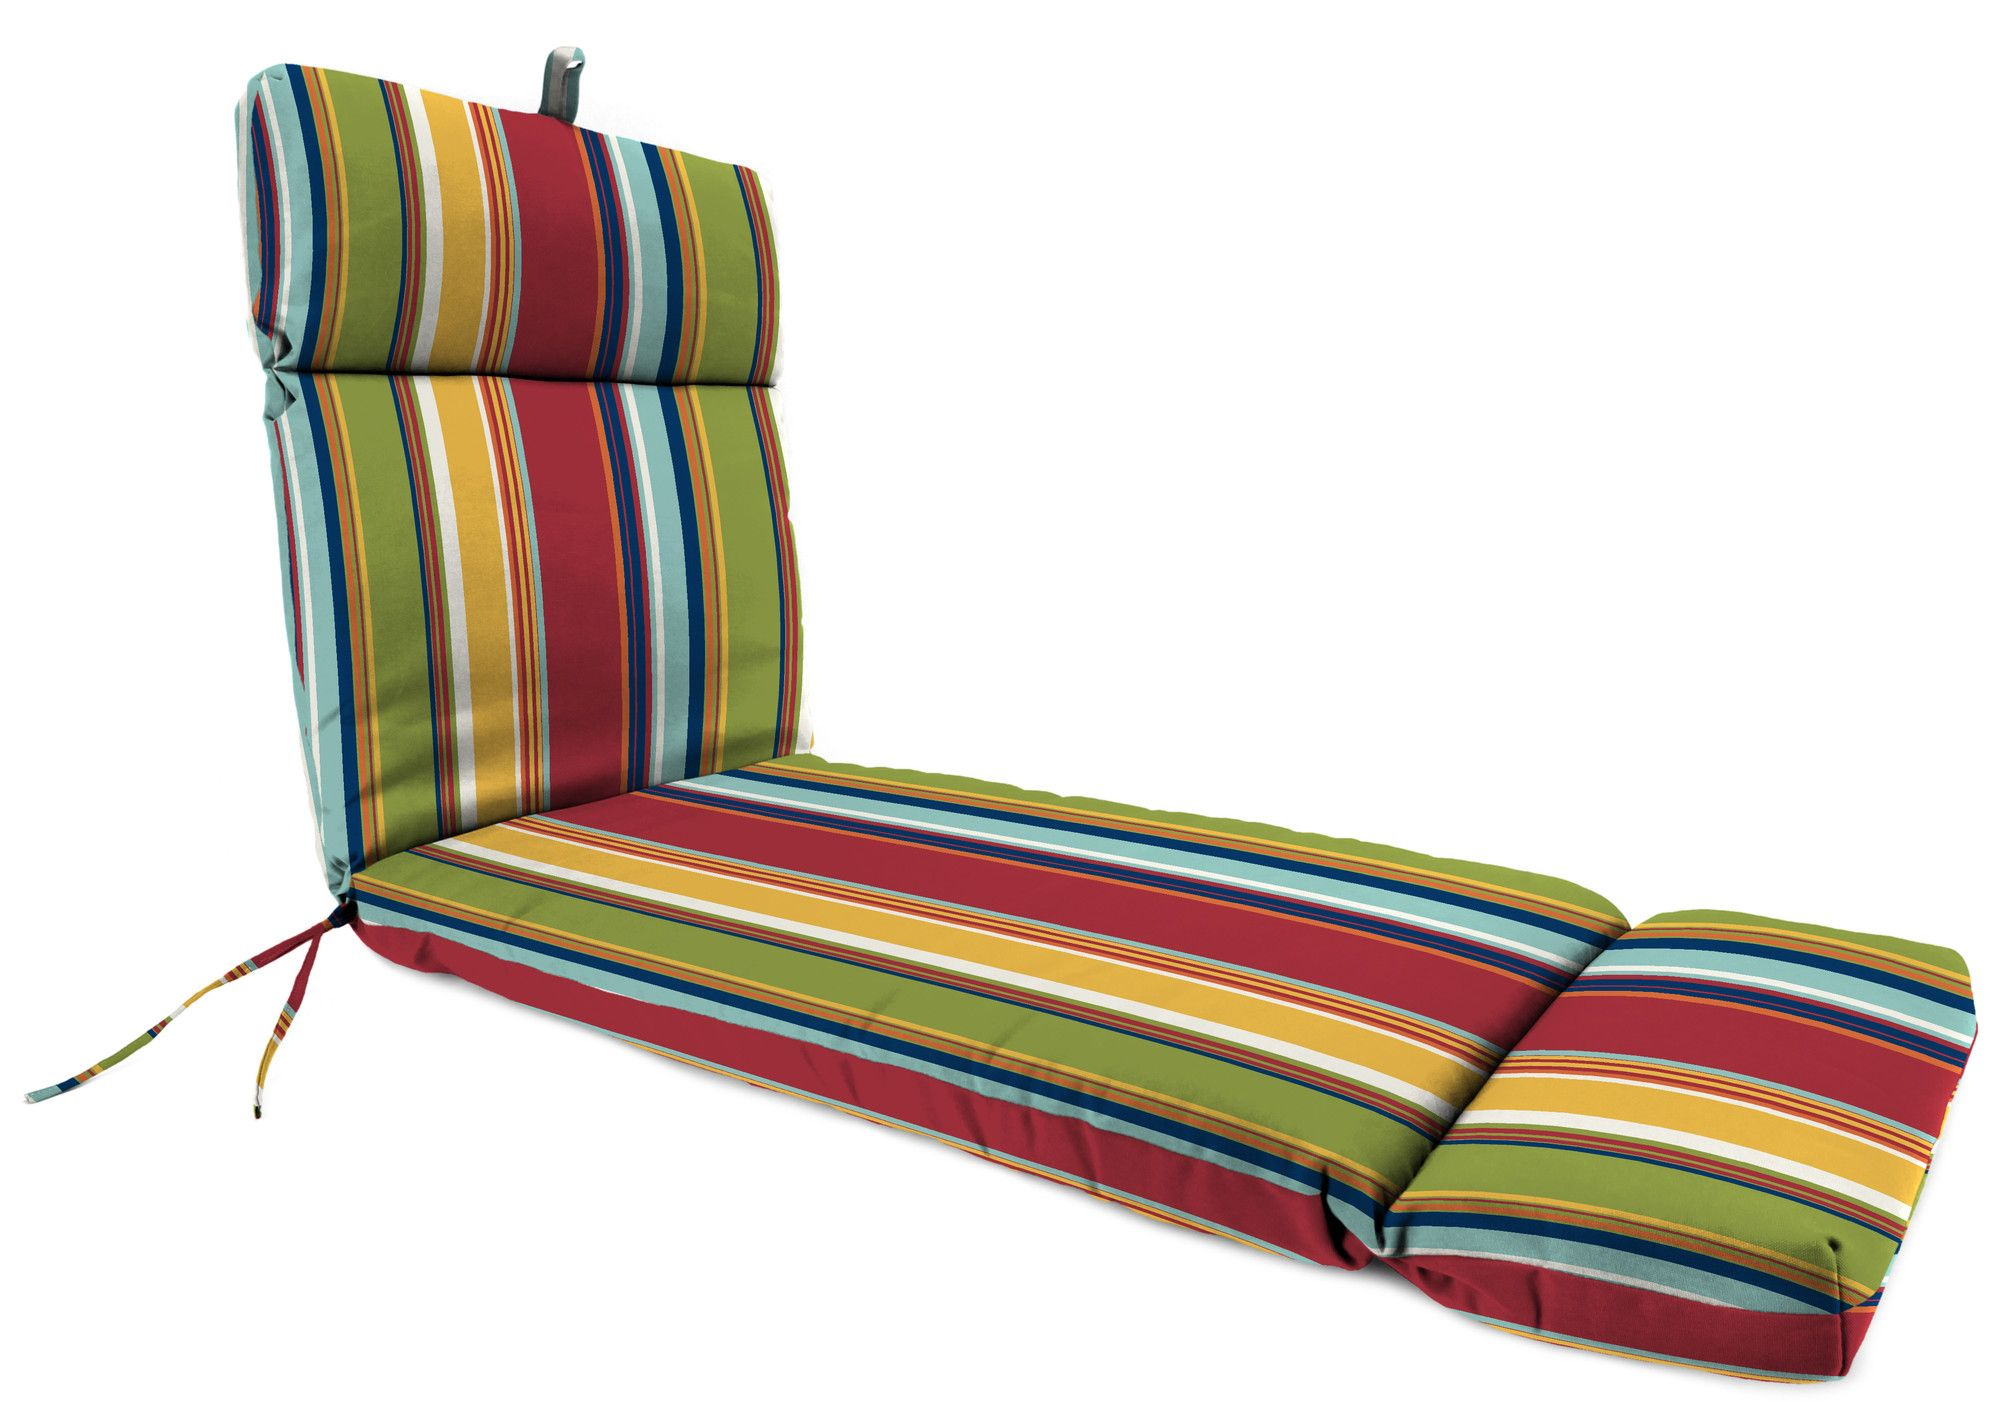 Idina Patio Lounger Cushion Outdoor Chaise Lounge Cushions Chaise Lounge Cushions Chaise Lounge